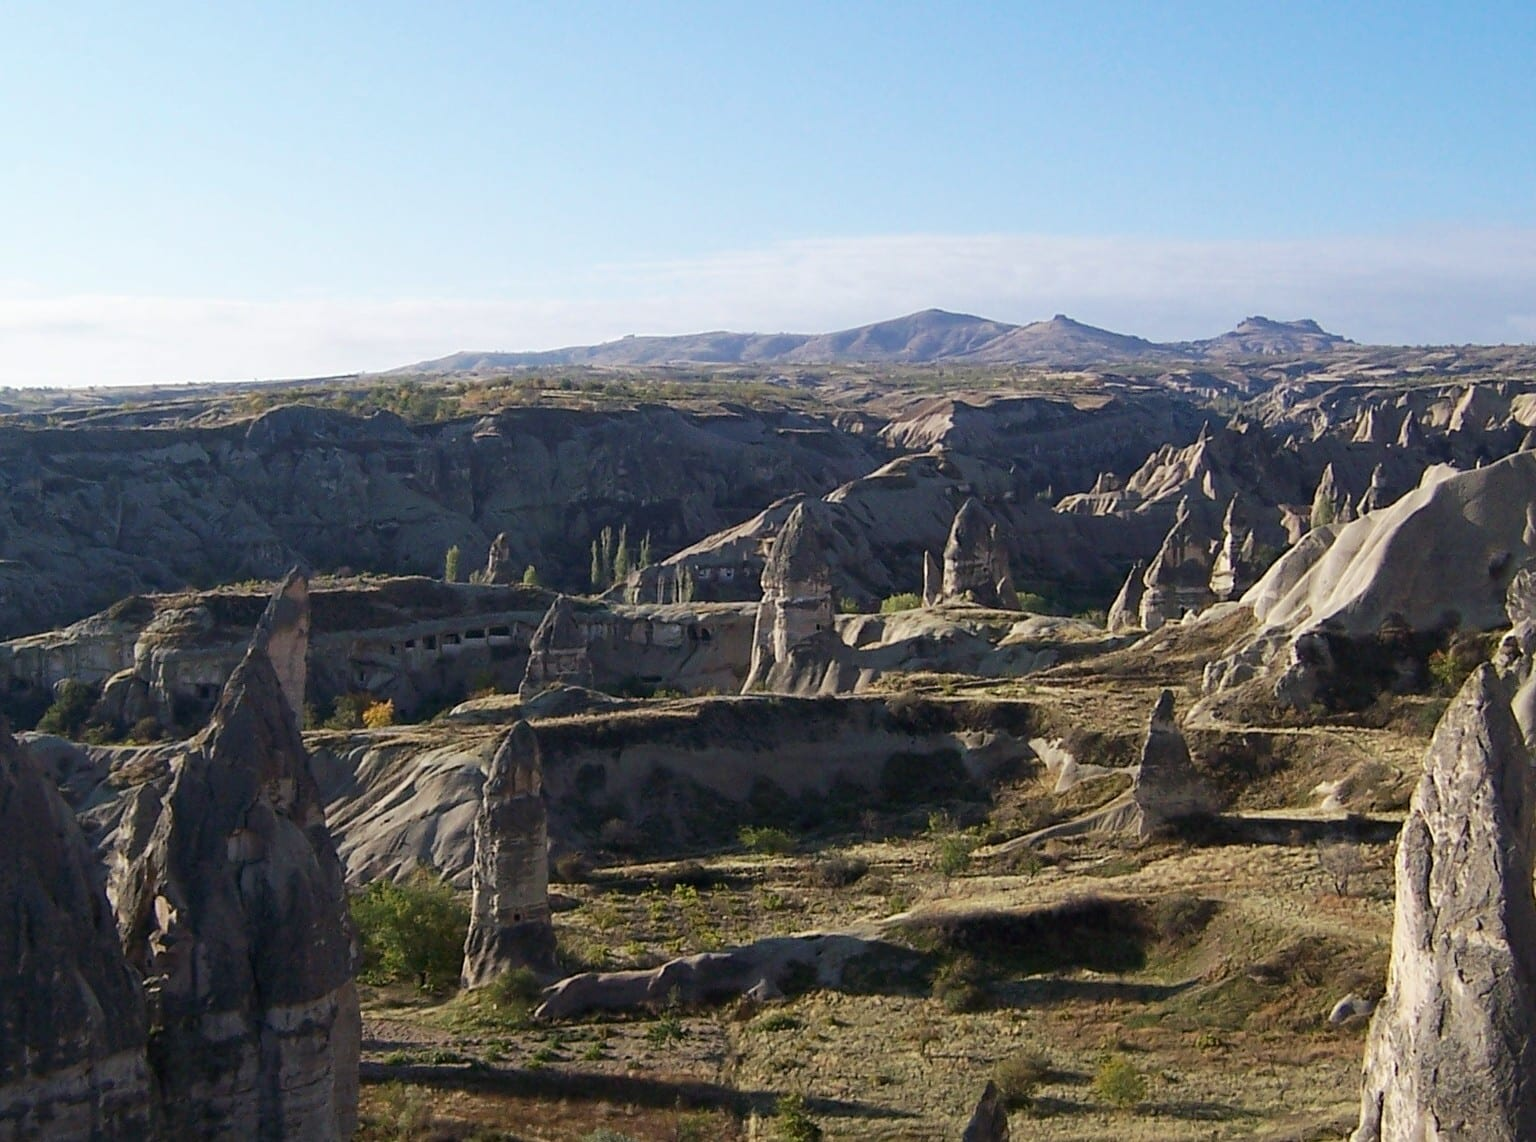 Sightseeing in Goreme, Turkey when cycling